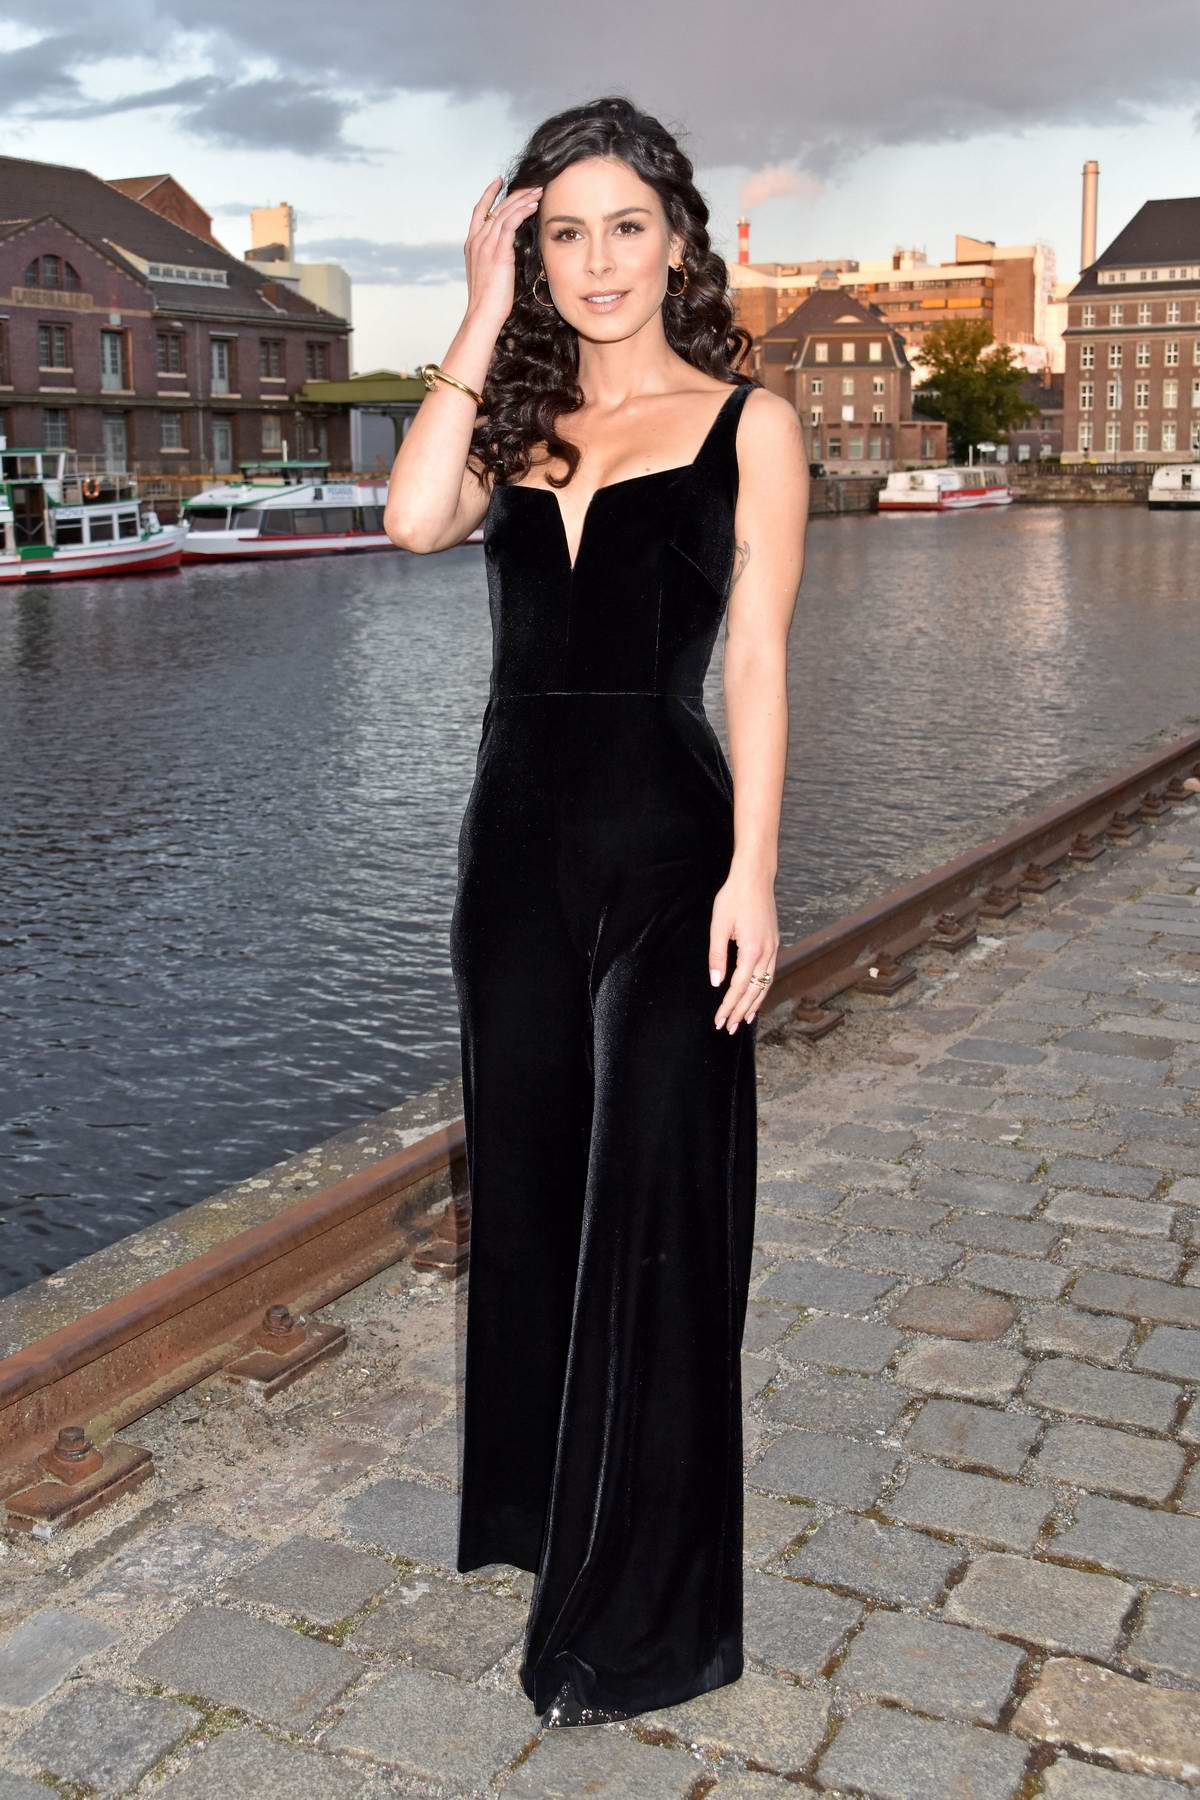 Lena Meyer-Landrut attends the 14th Charity Gala Dreamball at the Westhafen Event & Convention Center in Berlin, Germany